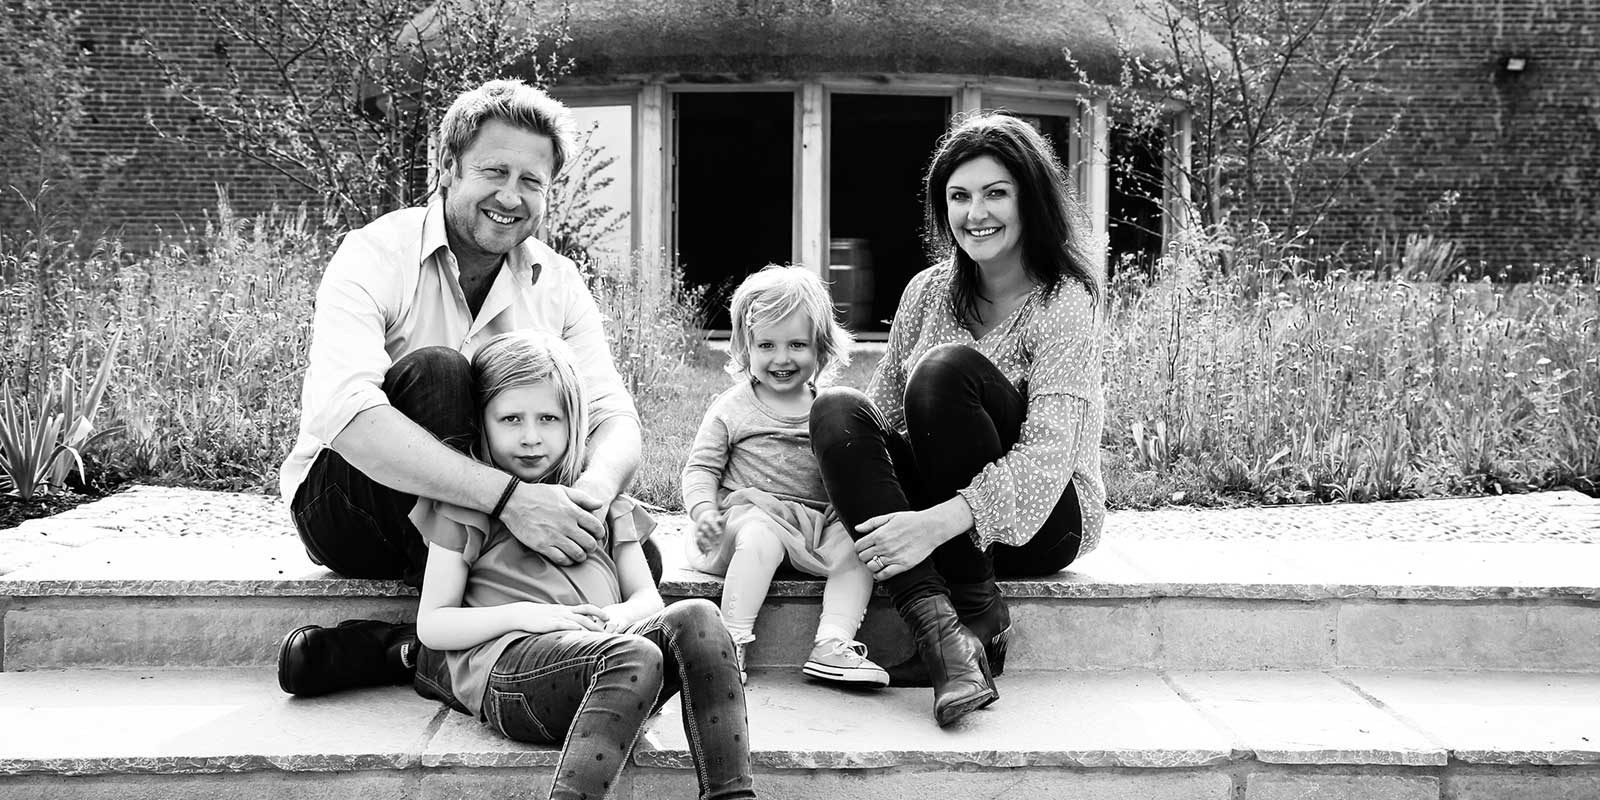 A family business, Jo, Matt and their two children sat in front of the round house